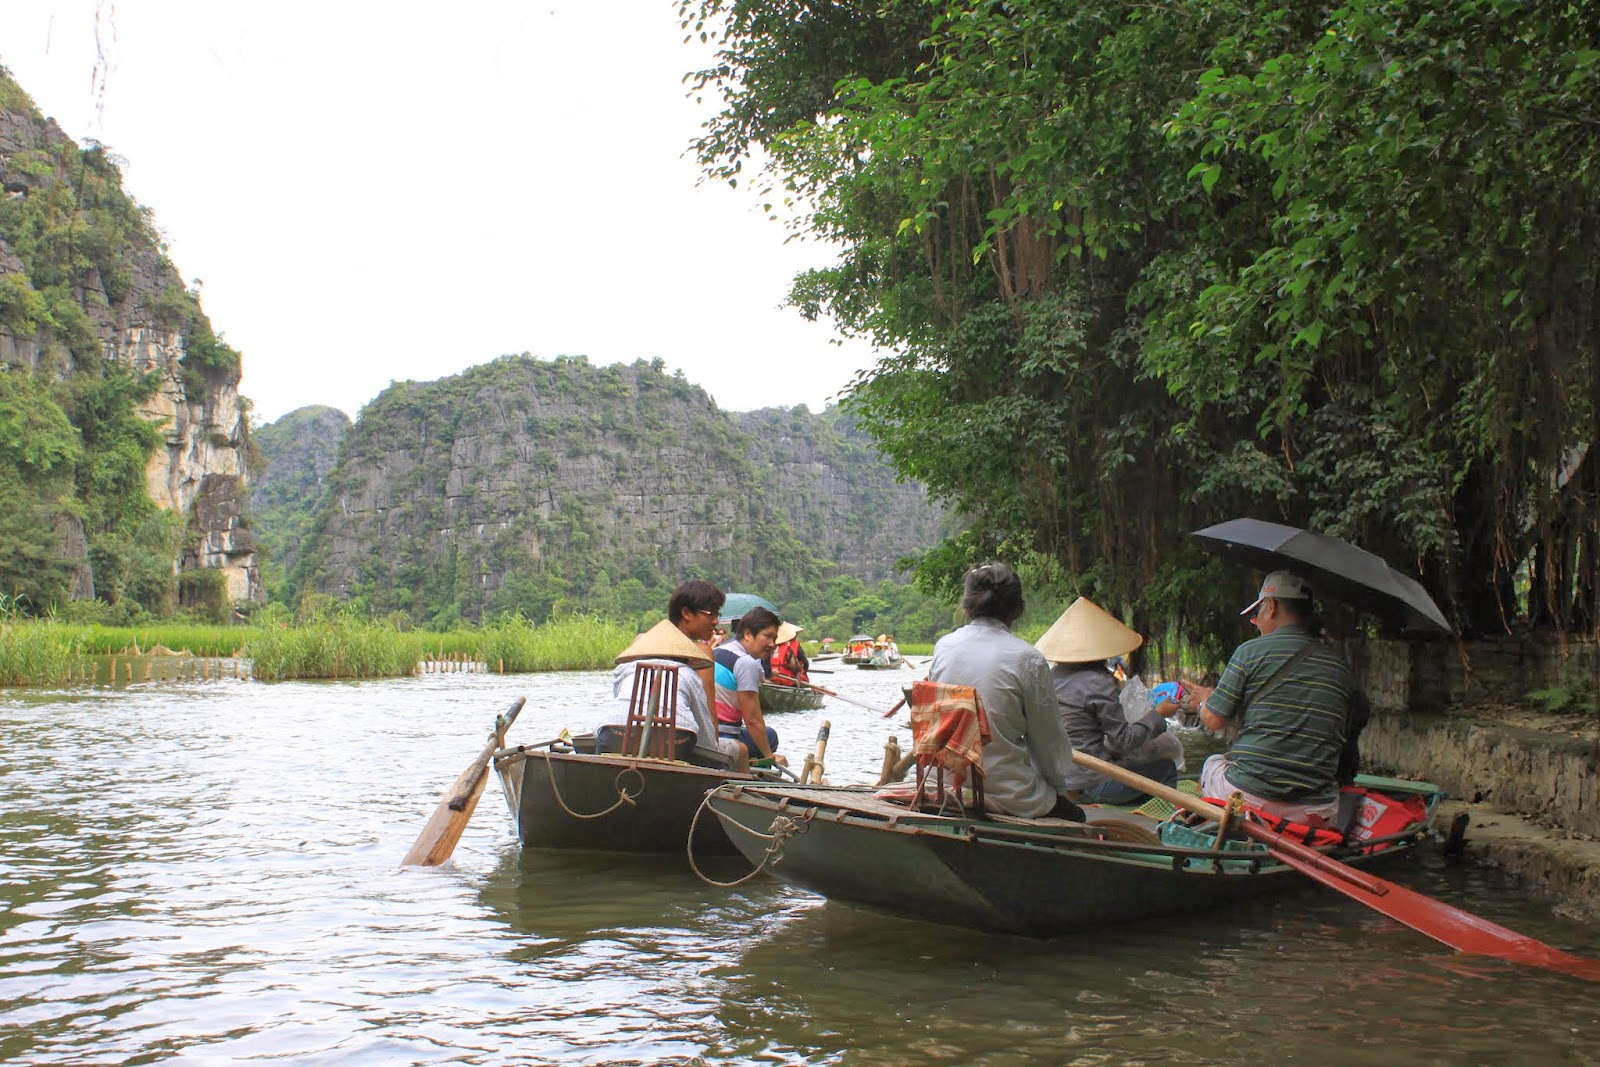 Don't be disappointed when the Vietnamese stop rowing the boats and persuade you to buy souvenirs at Tam Coc which is very common to find at any tourist attractions in Vietnam